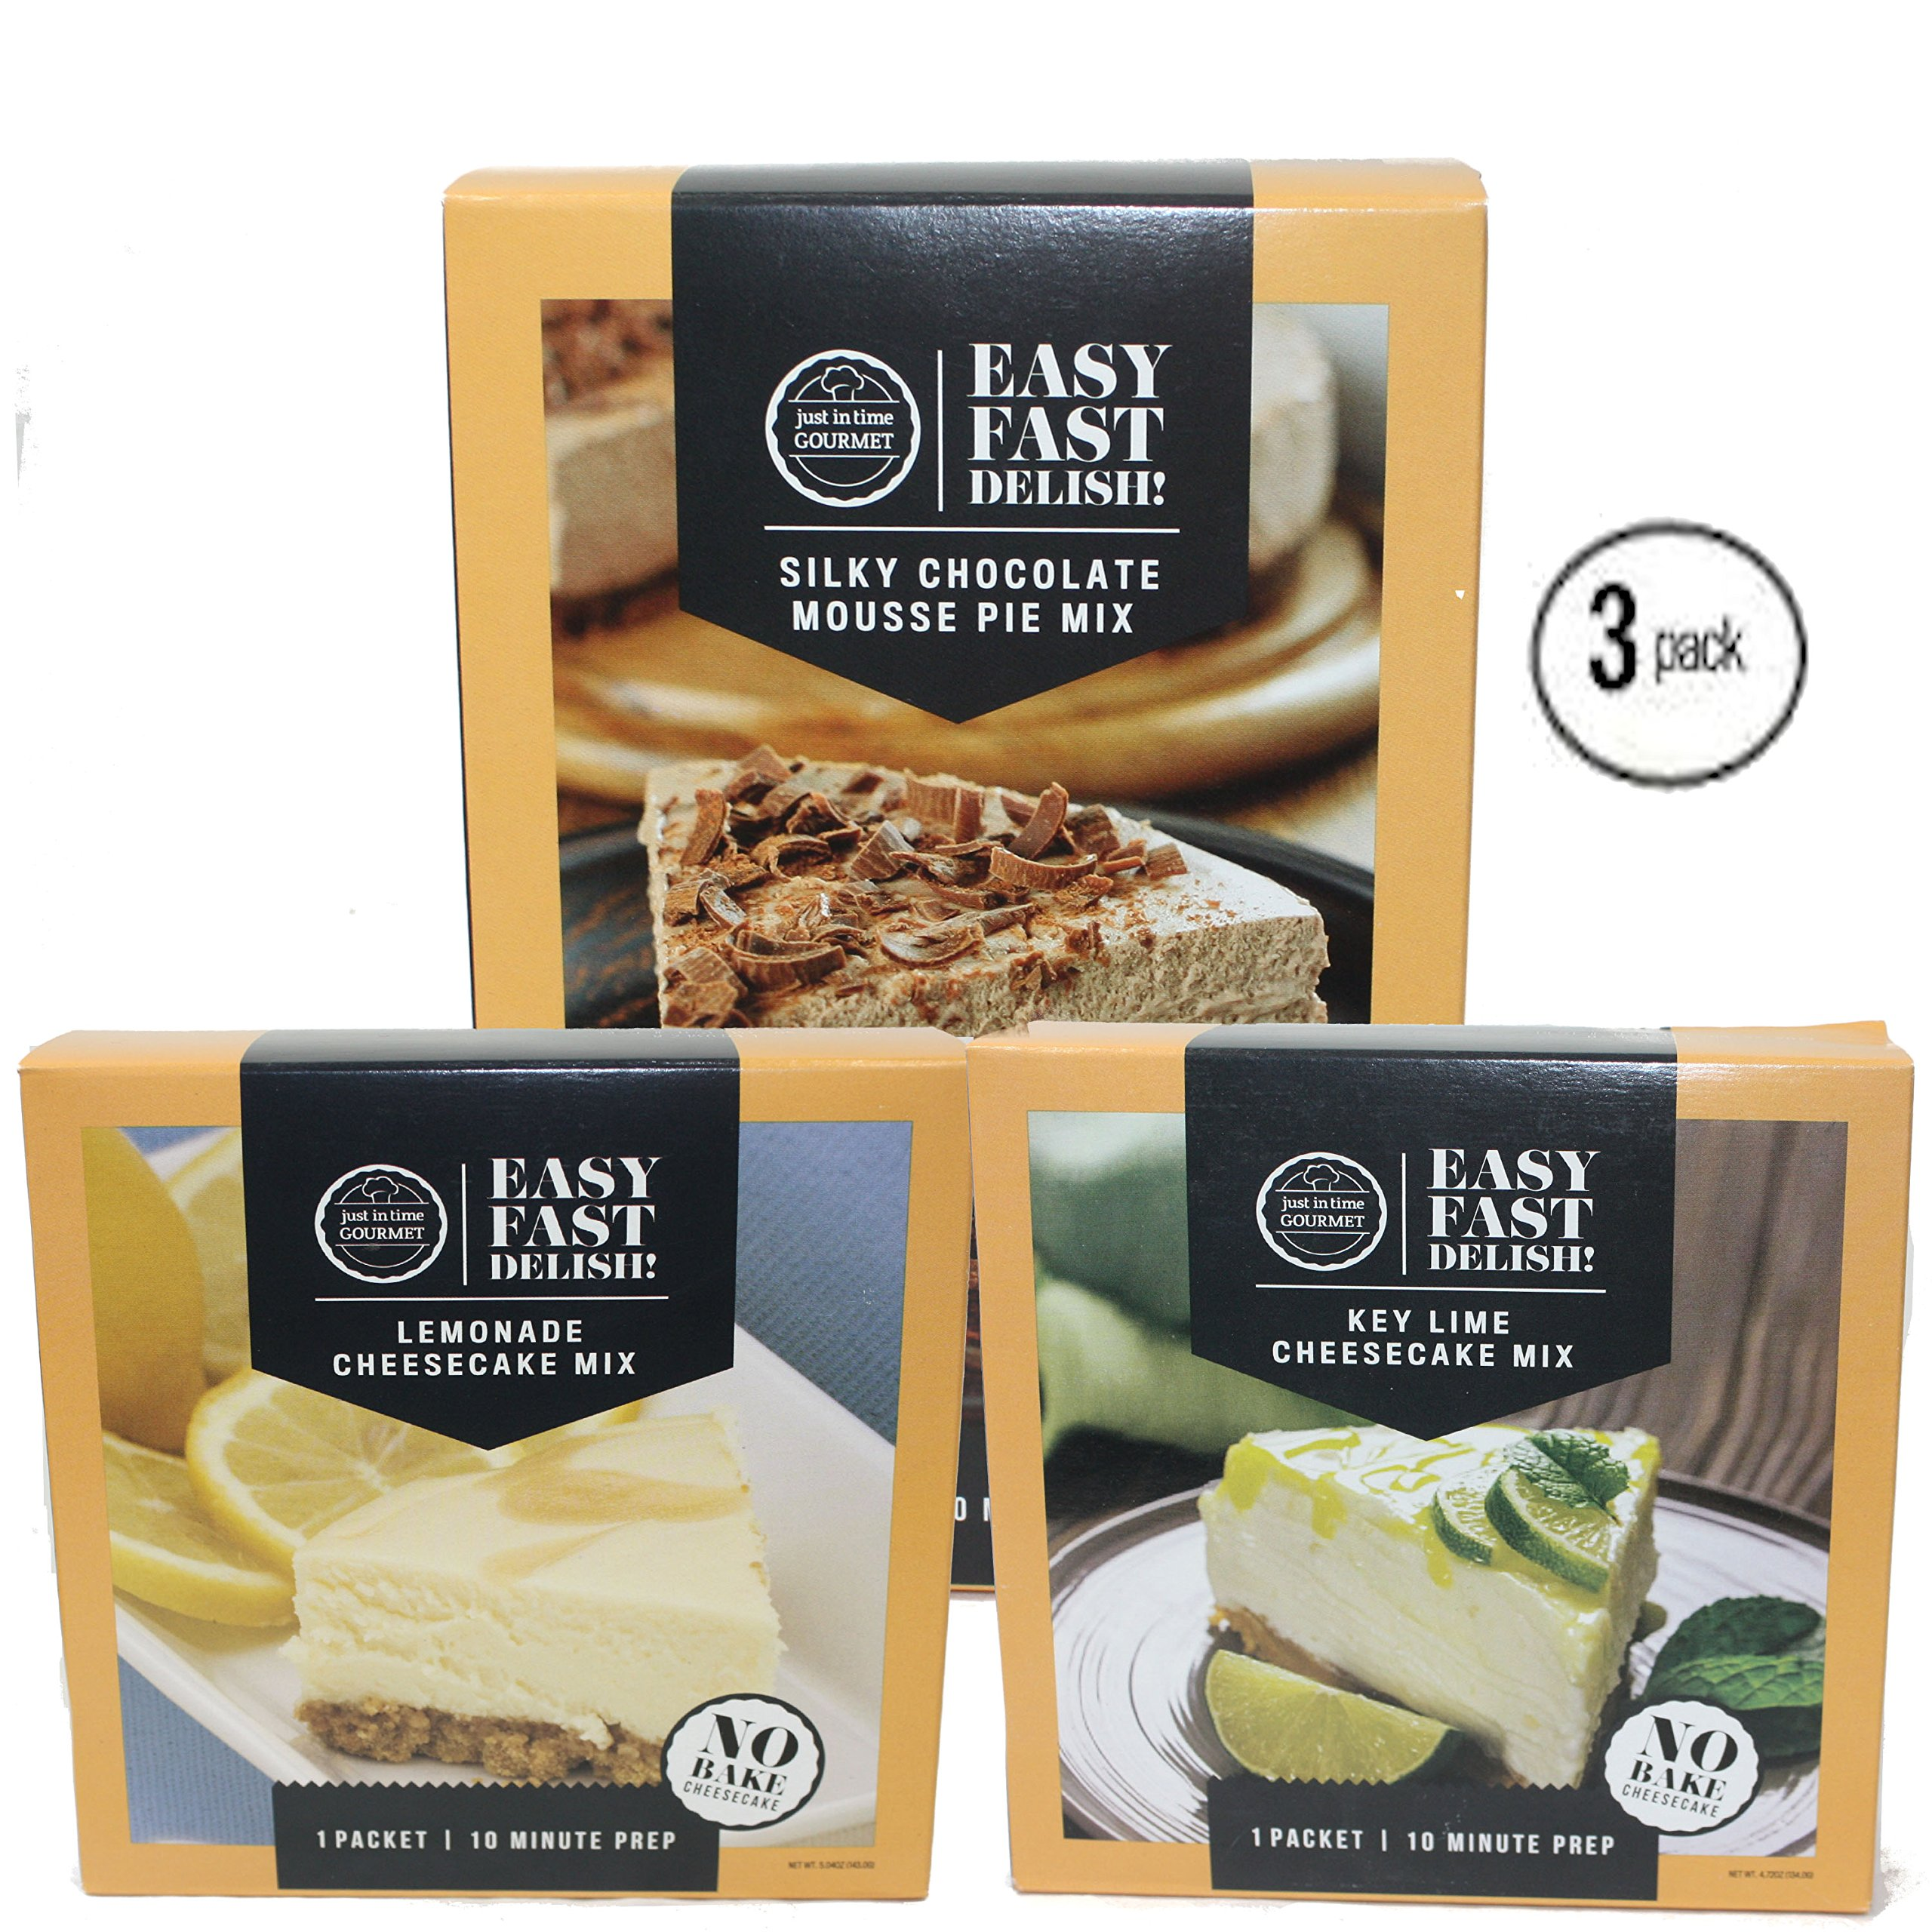 Just In Time Gourmet Silky Mousse Pie Mix | Lemonade Cheesecake Mix | Key Lime Cheesecake Mix BUNDLE 3 Pack